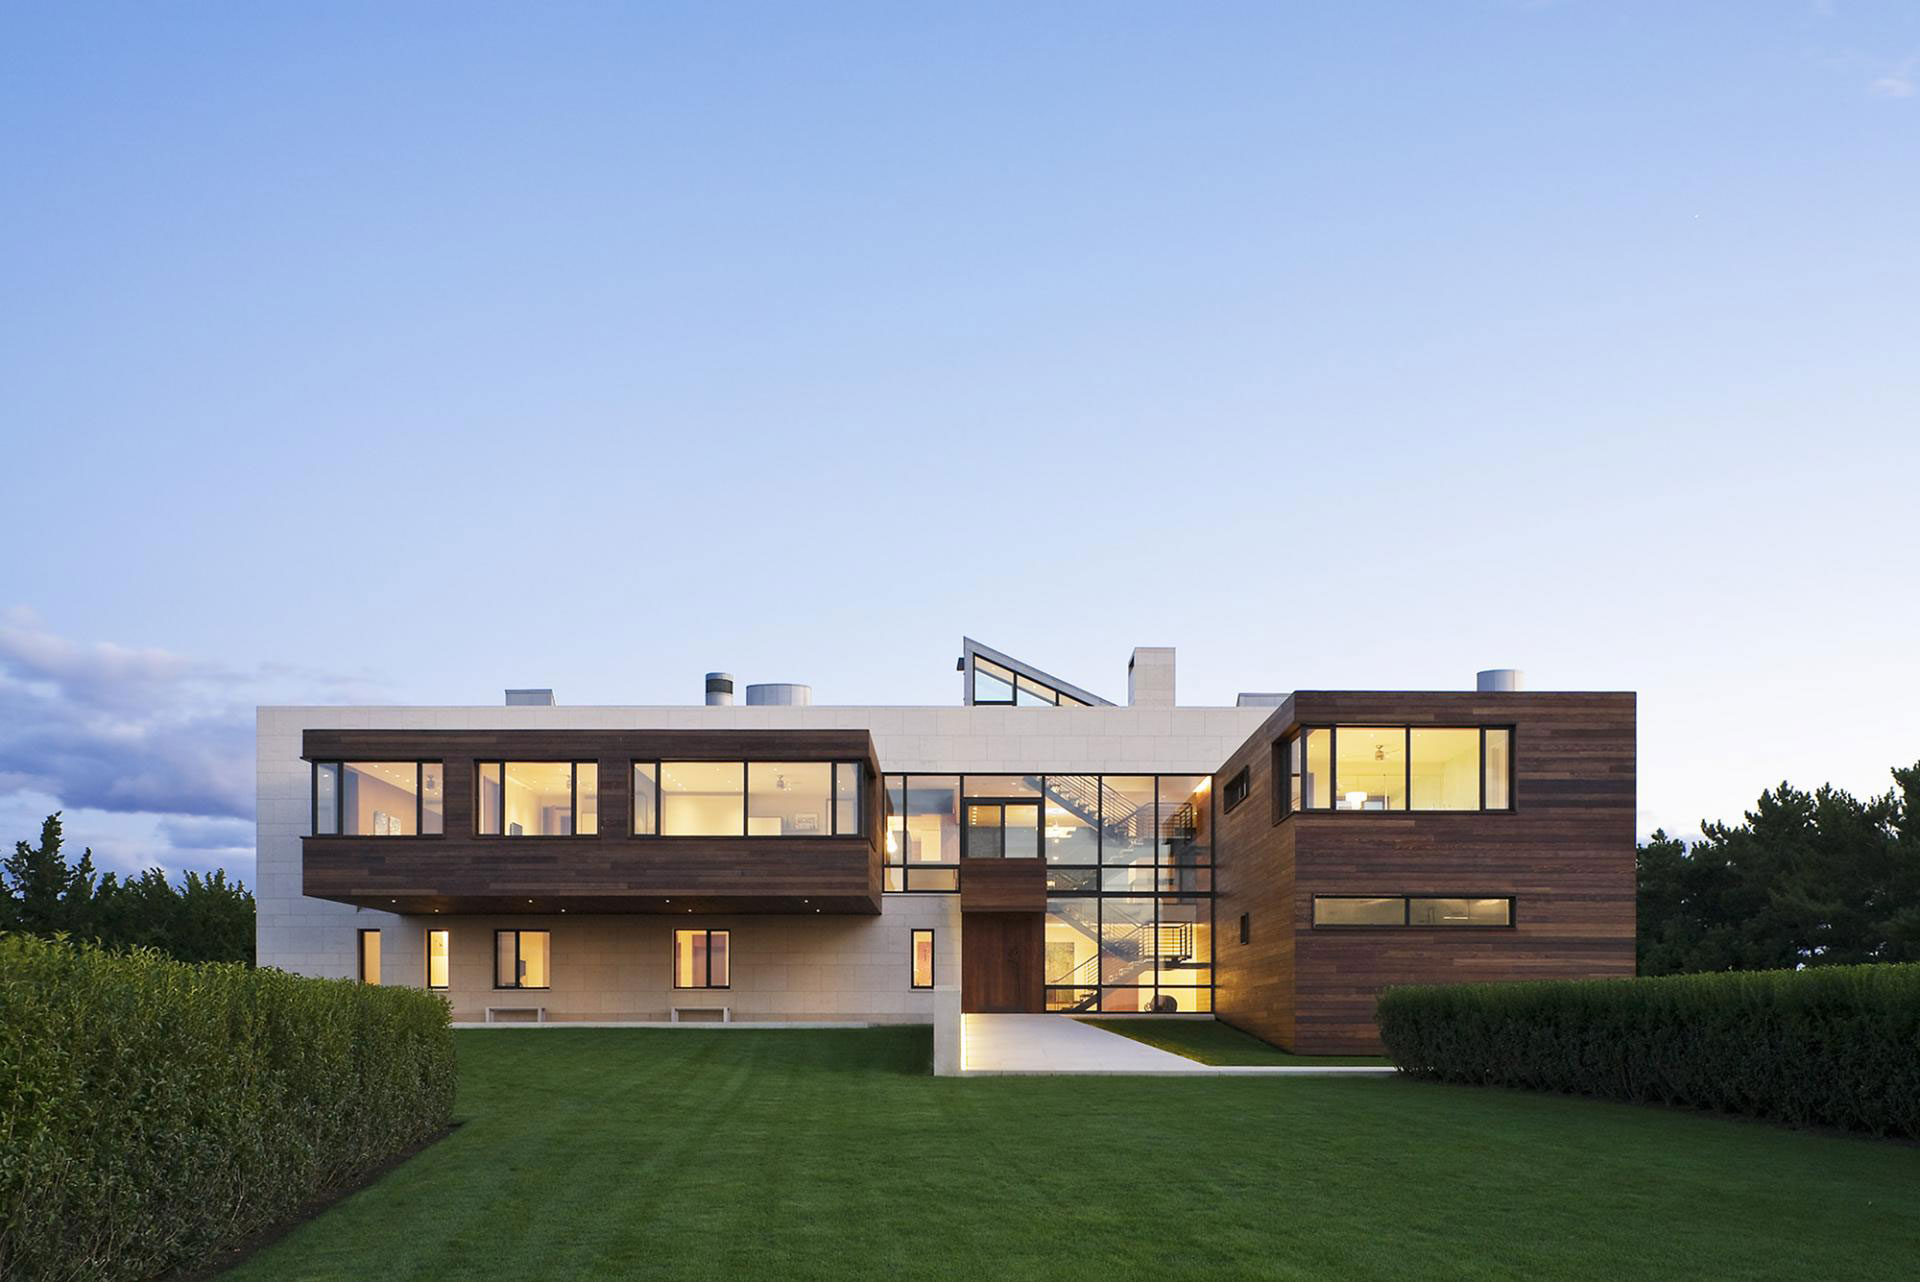 Luxurious summer retreat in southampton new york Modern house architect new york